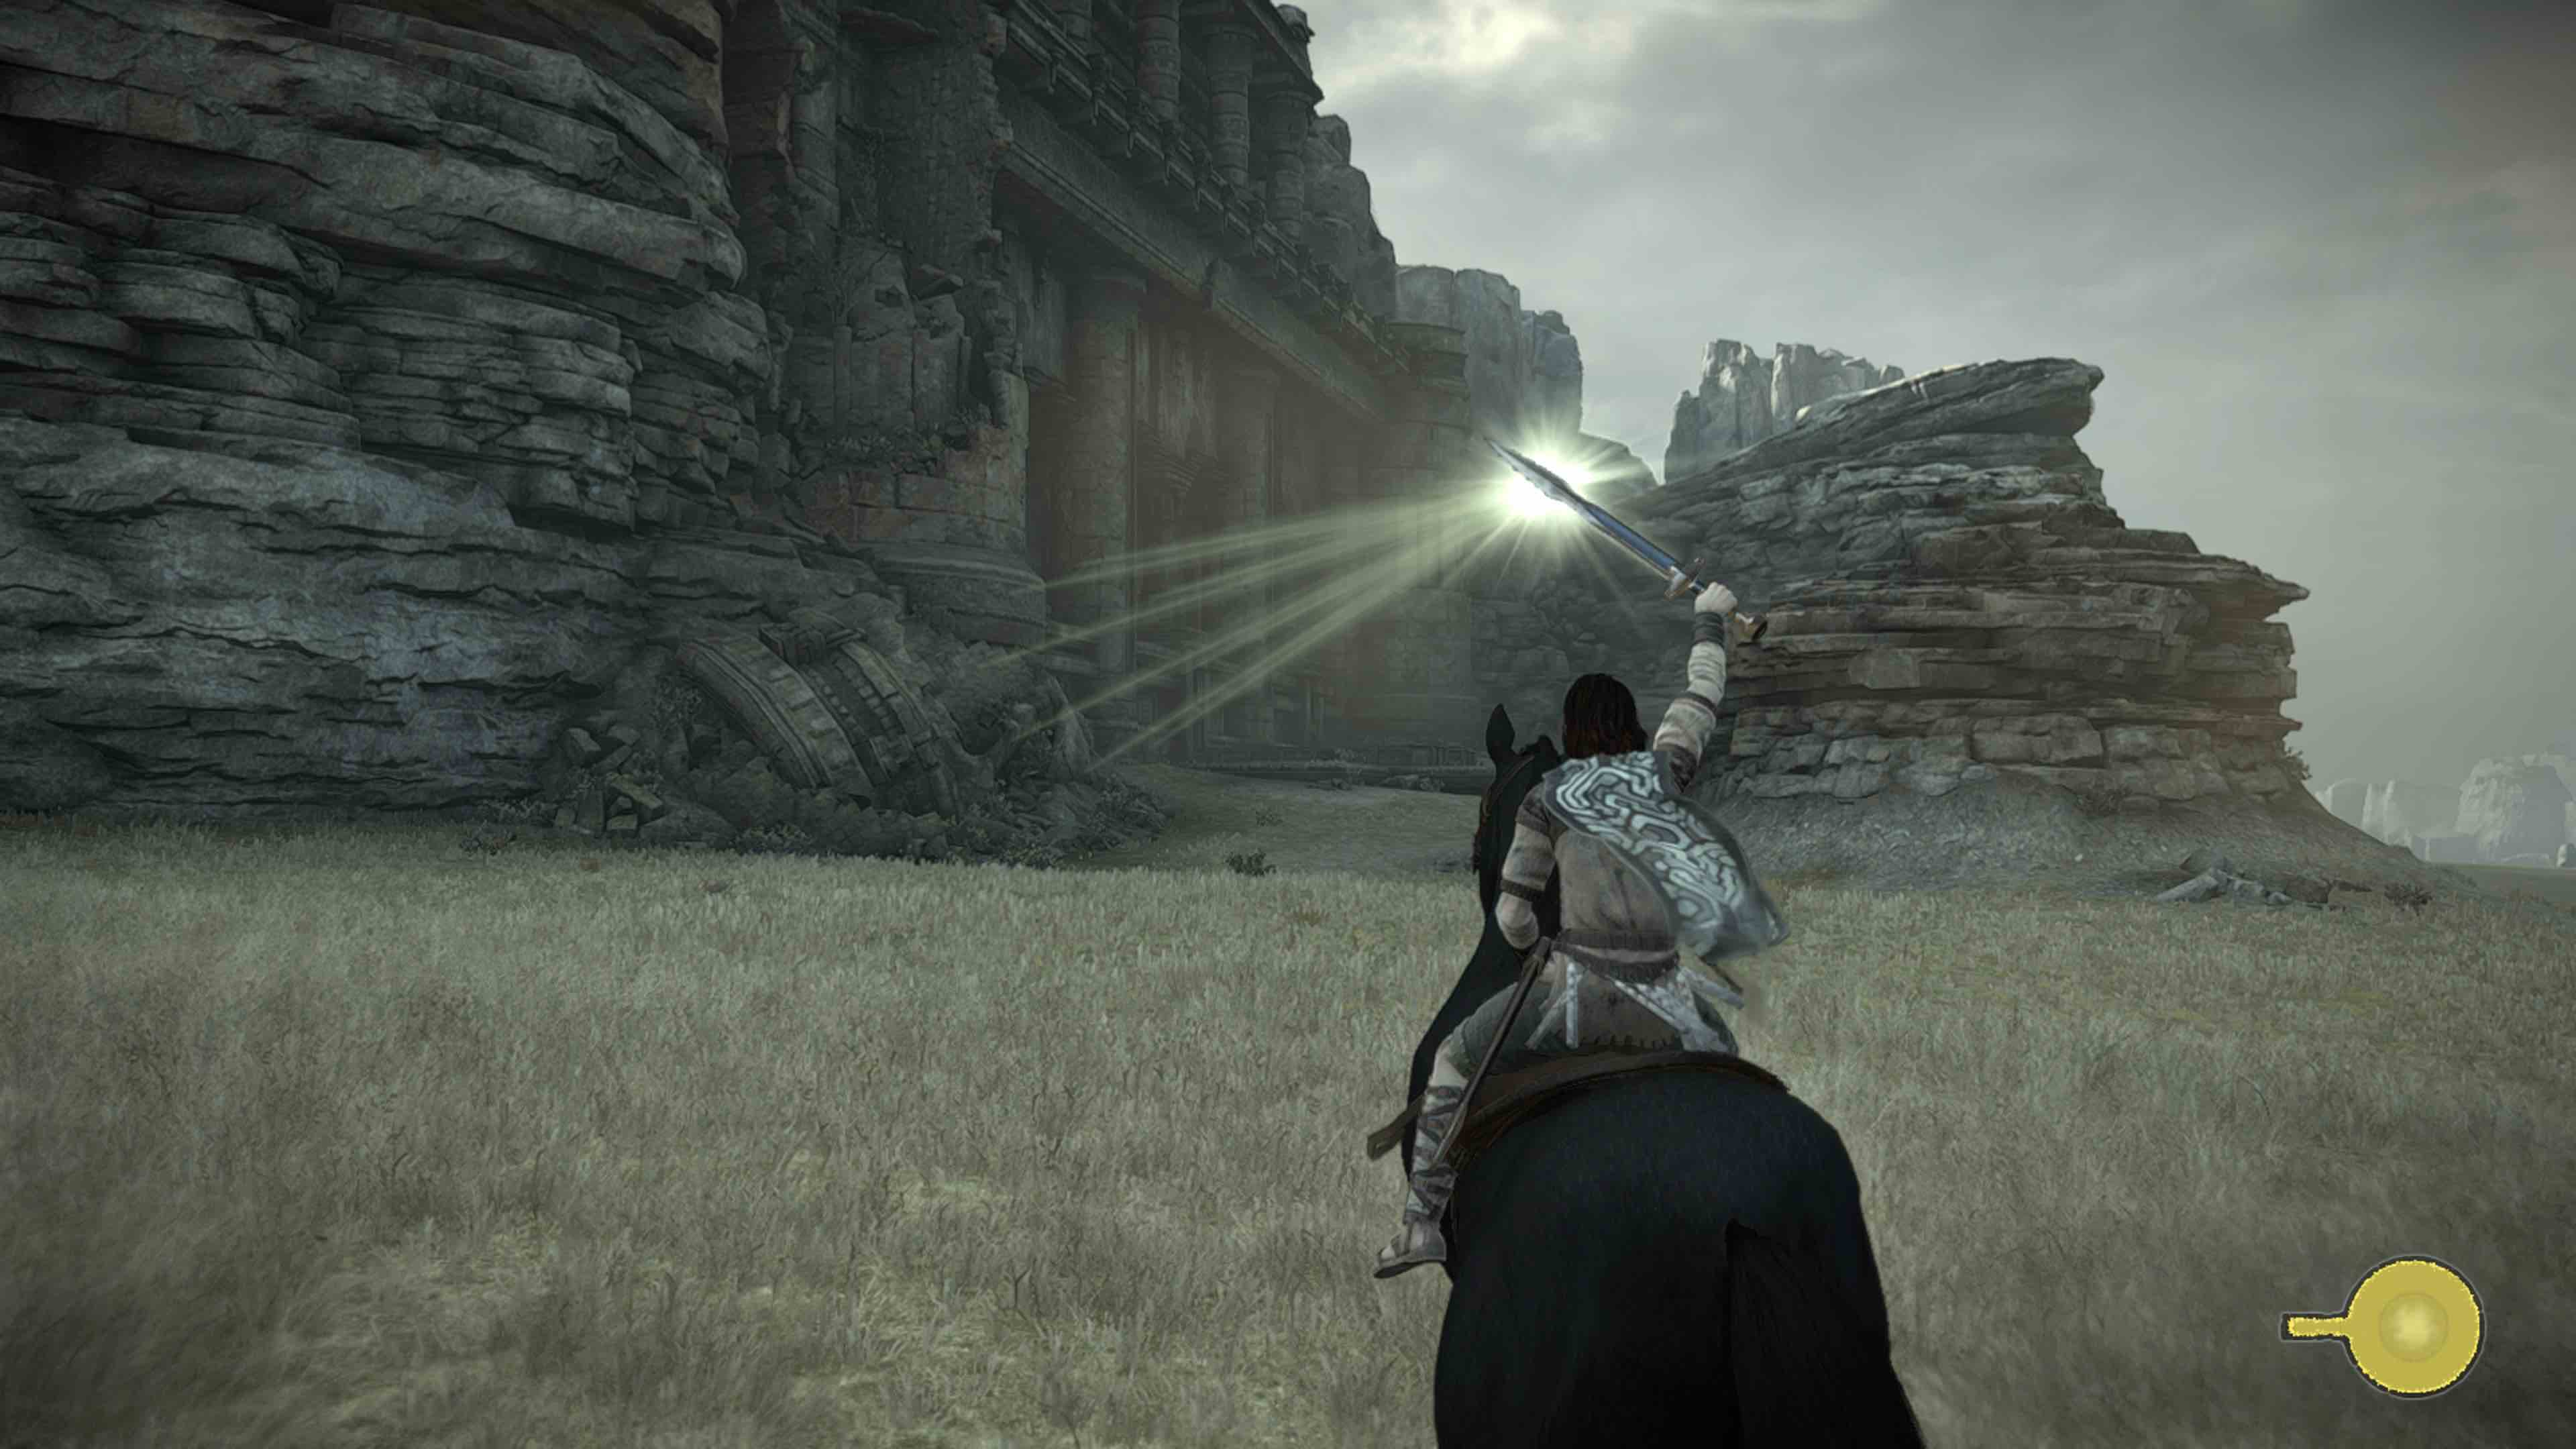 Shadow_of_the_Colossus_Avance_5